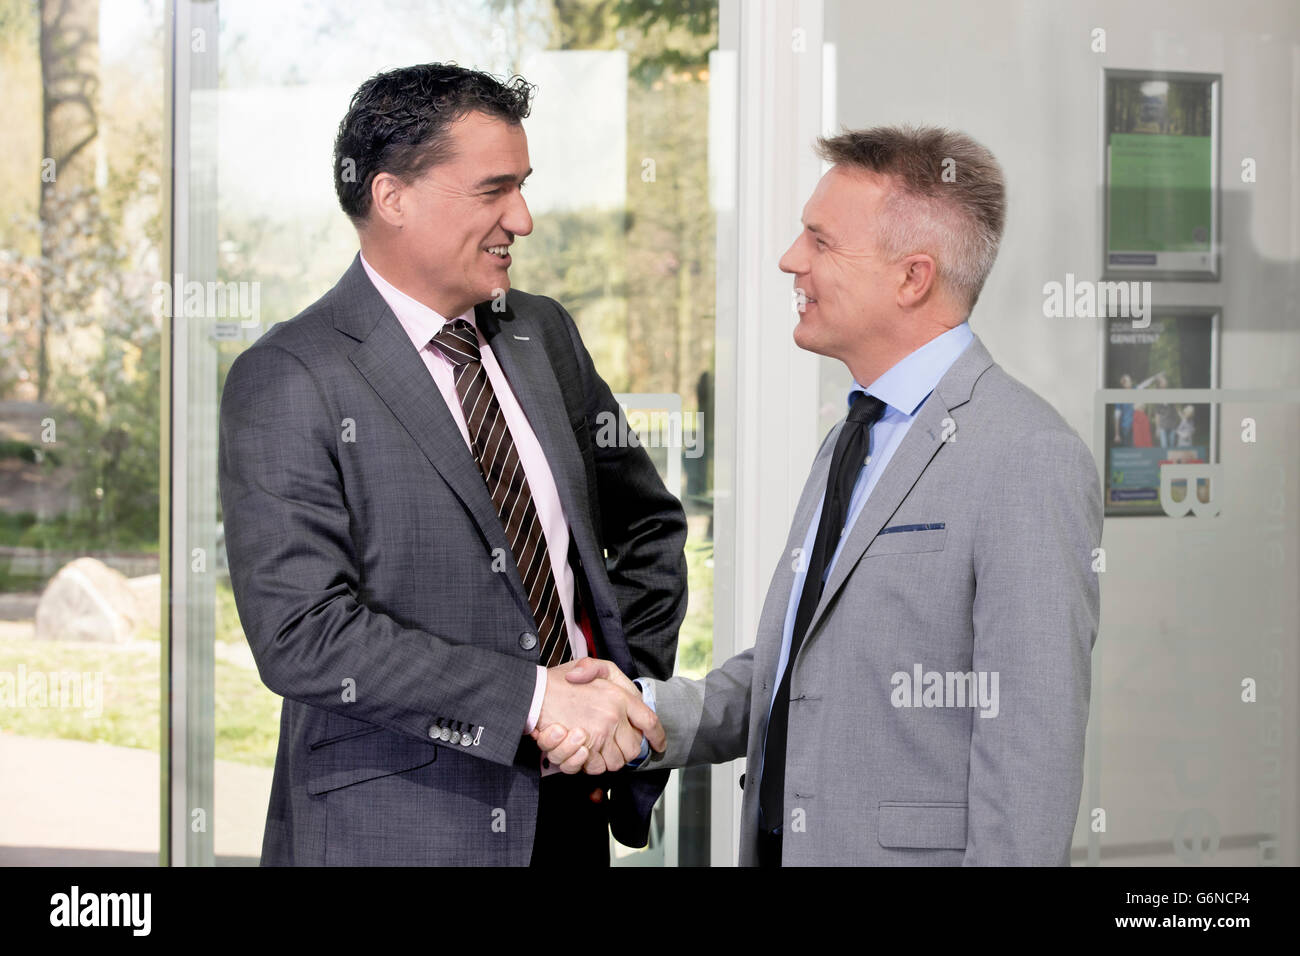 Confident and successful business men shaking hands in a large cooperate modern office - Stock Image